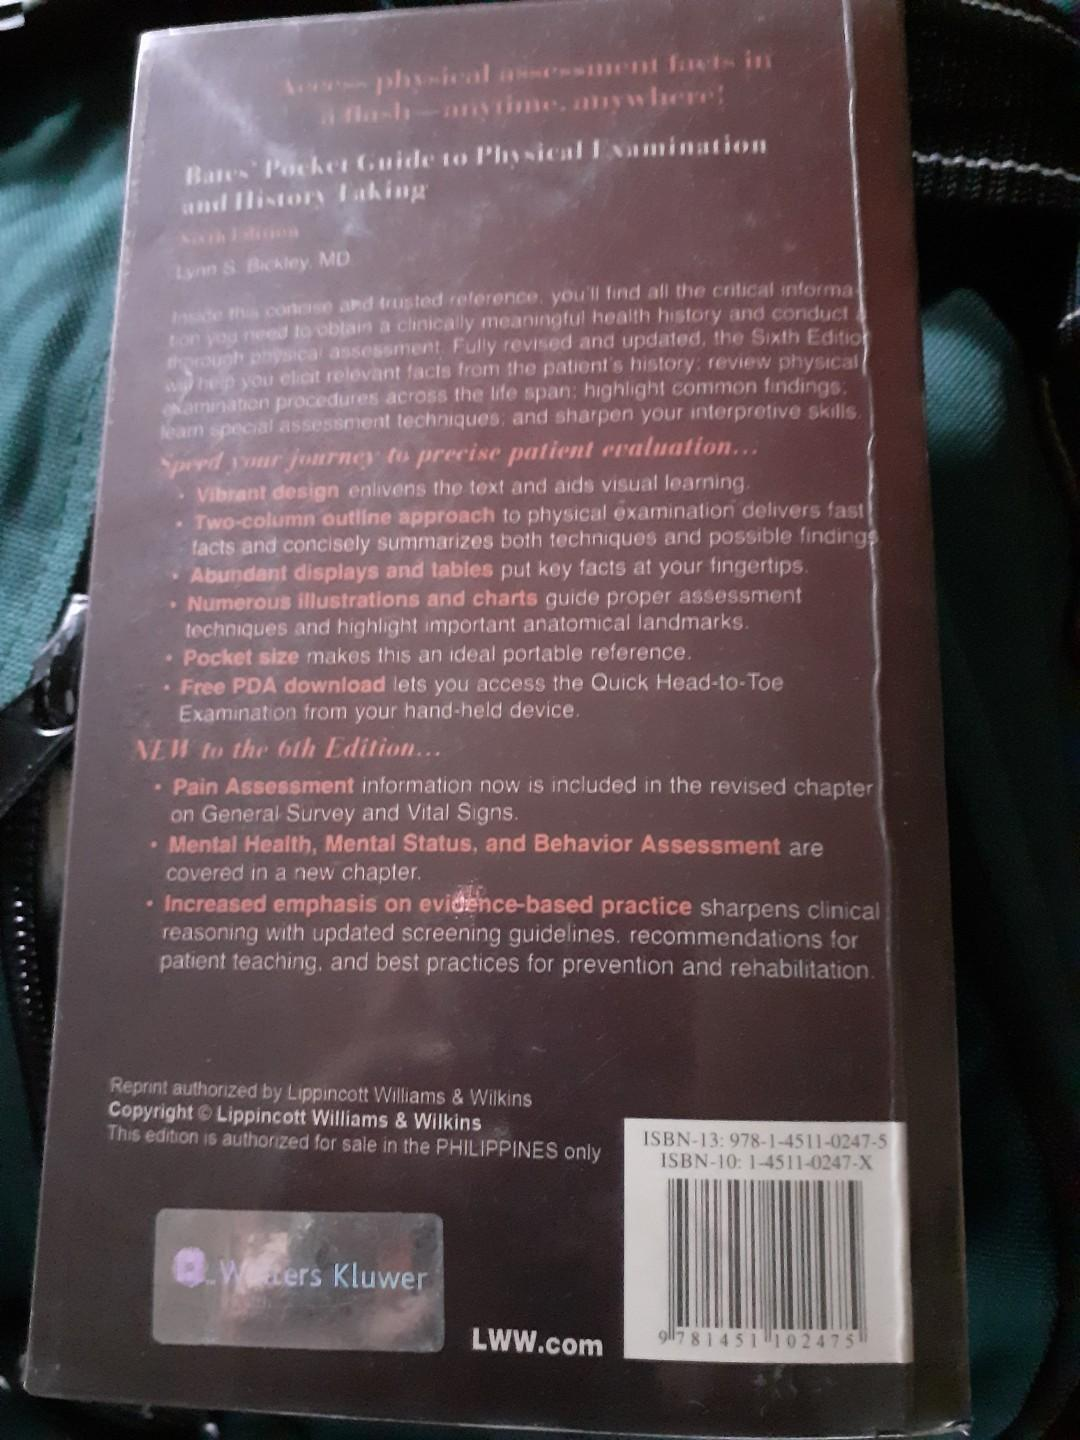 Bates Pocket Guide in Physical Examination and History Taking  by Lynn S. Bickley